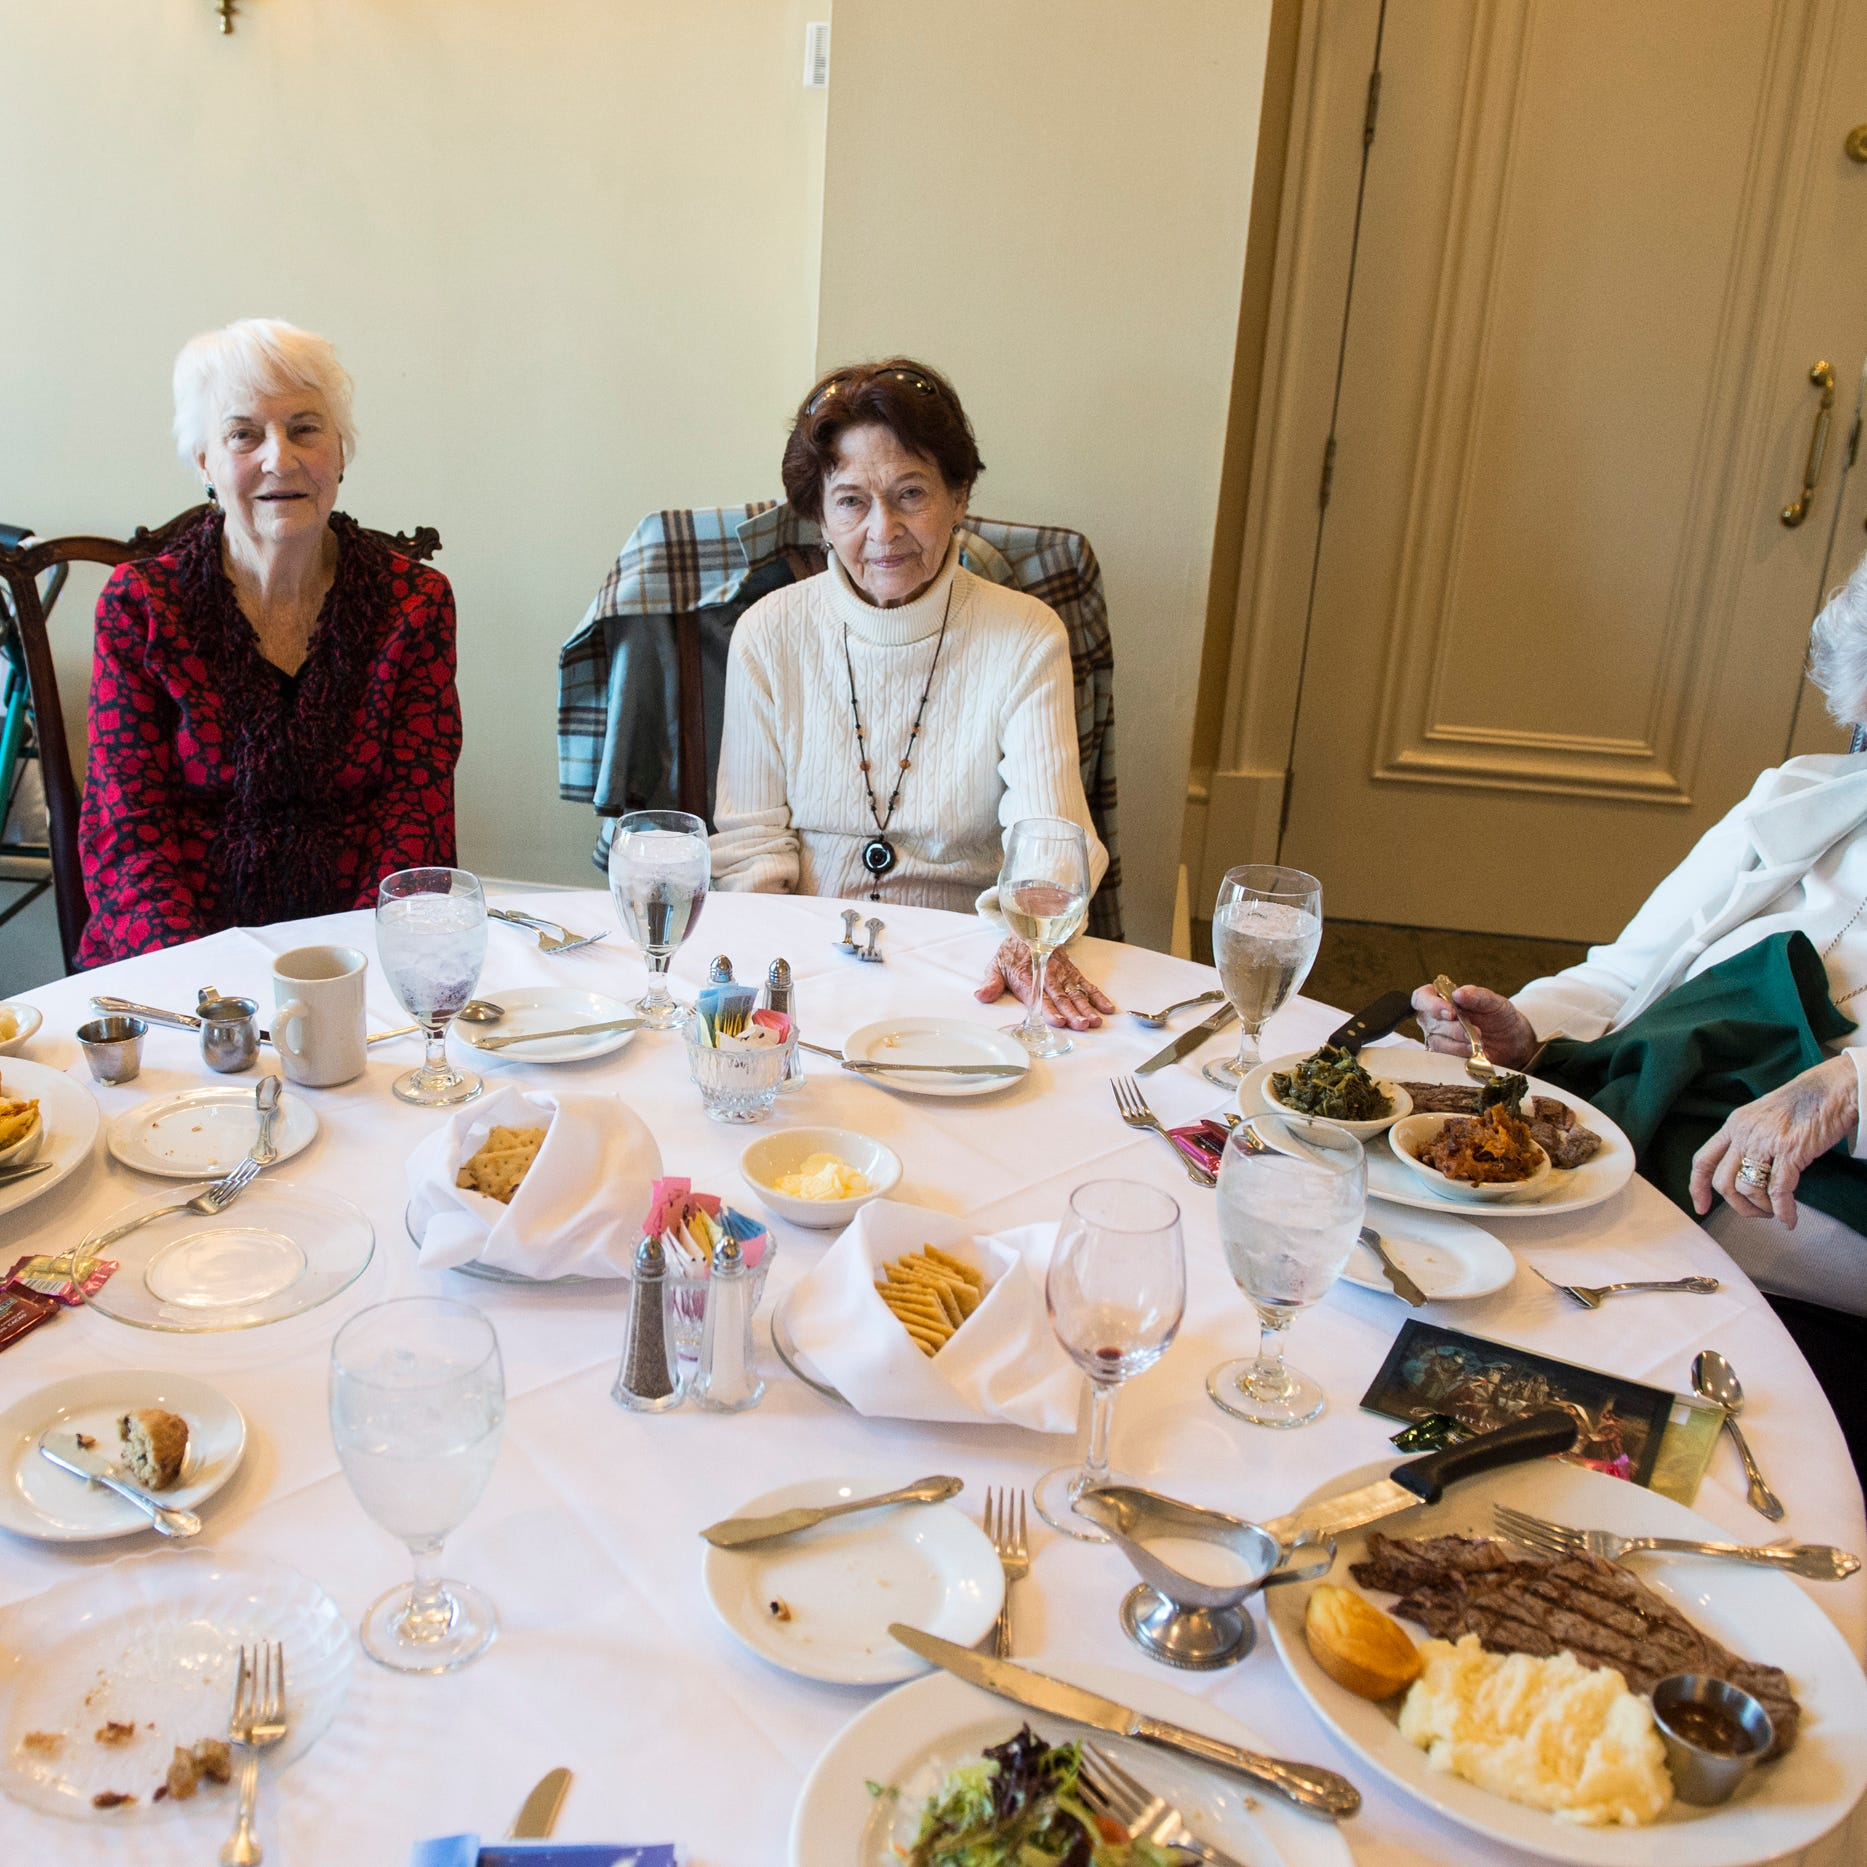 Bless their hearts: 70 years later, these golden girls still sparkle